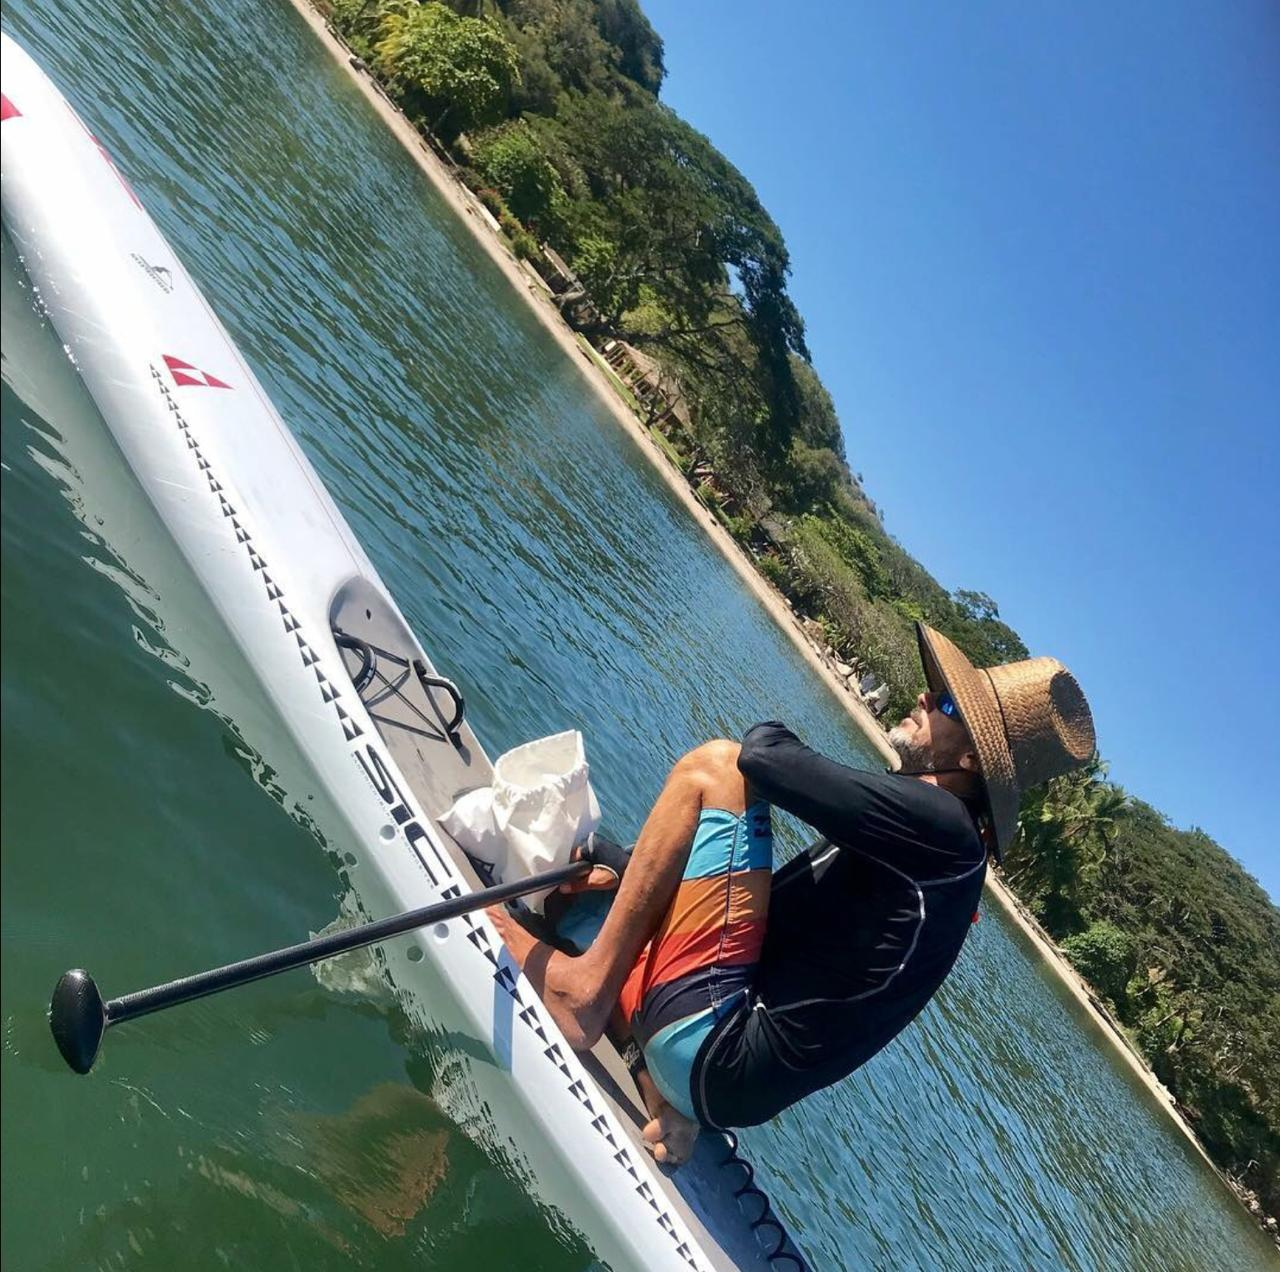 RONALD - Chief Instructor, owner and professional lifeguard for over 25 years. Certified SUP and SURF Instructor. 30 years of experience as a Waterman